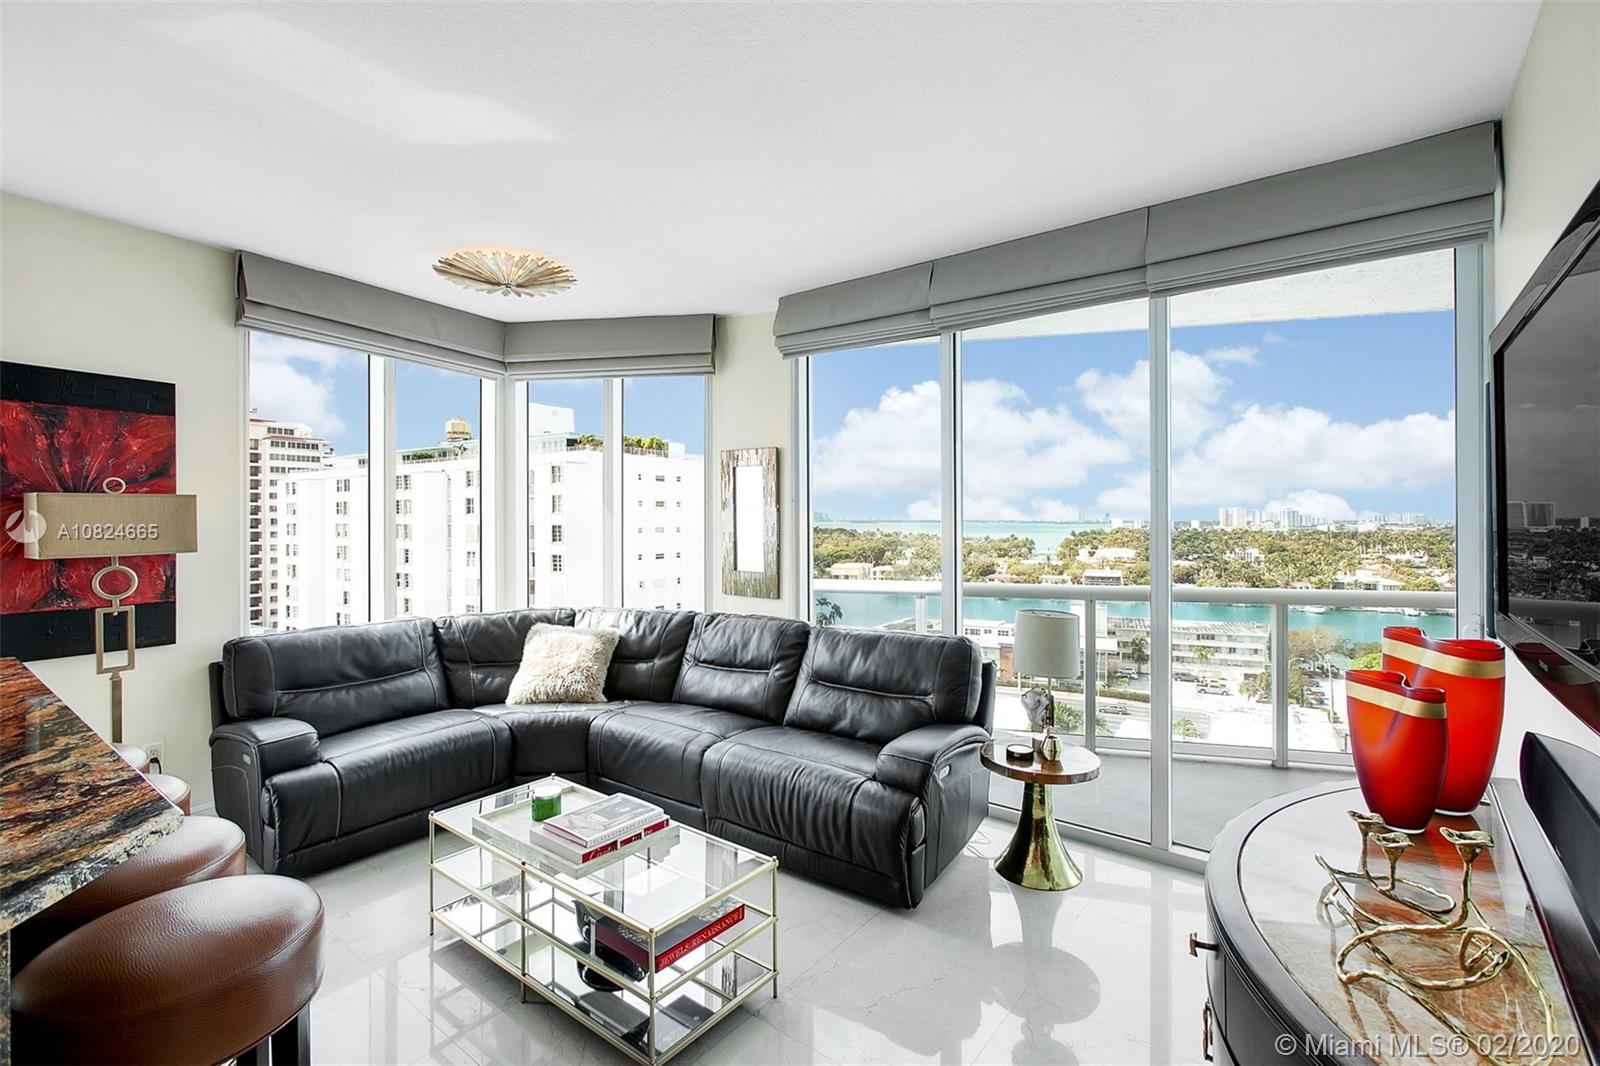 A modern furnished 2 bedroom, 2 bathroom corner apartment at the Bel Aire Miami Beach, a newer luxury oceanfront condo in a great neighborhood.  This apartment has marble flooring throughout, and all rooms have floor-to-ceiling windows.  Enjoy ocean, intercoastal and city views from this open floor plan and from two spacious balconies. The unit comes with four parking spaces!  The Bel Aire amenities include direct beach access, a heated pool, gas grill, game room, fitness center, 24-hr security, and valet services.  You will love this apartment.  Easy to show.